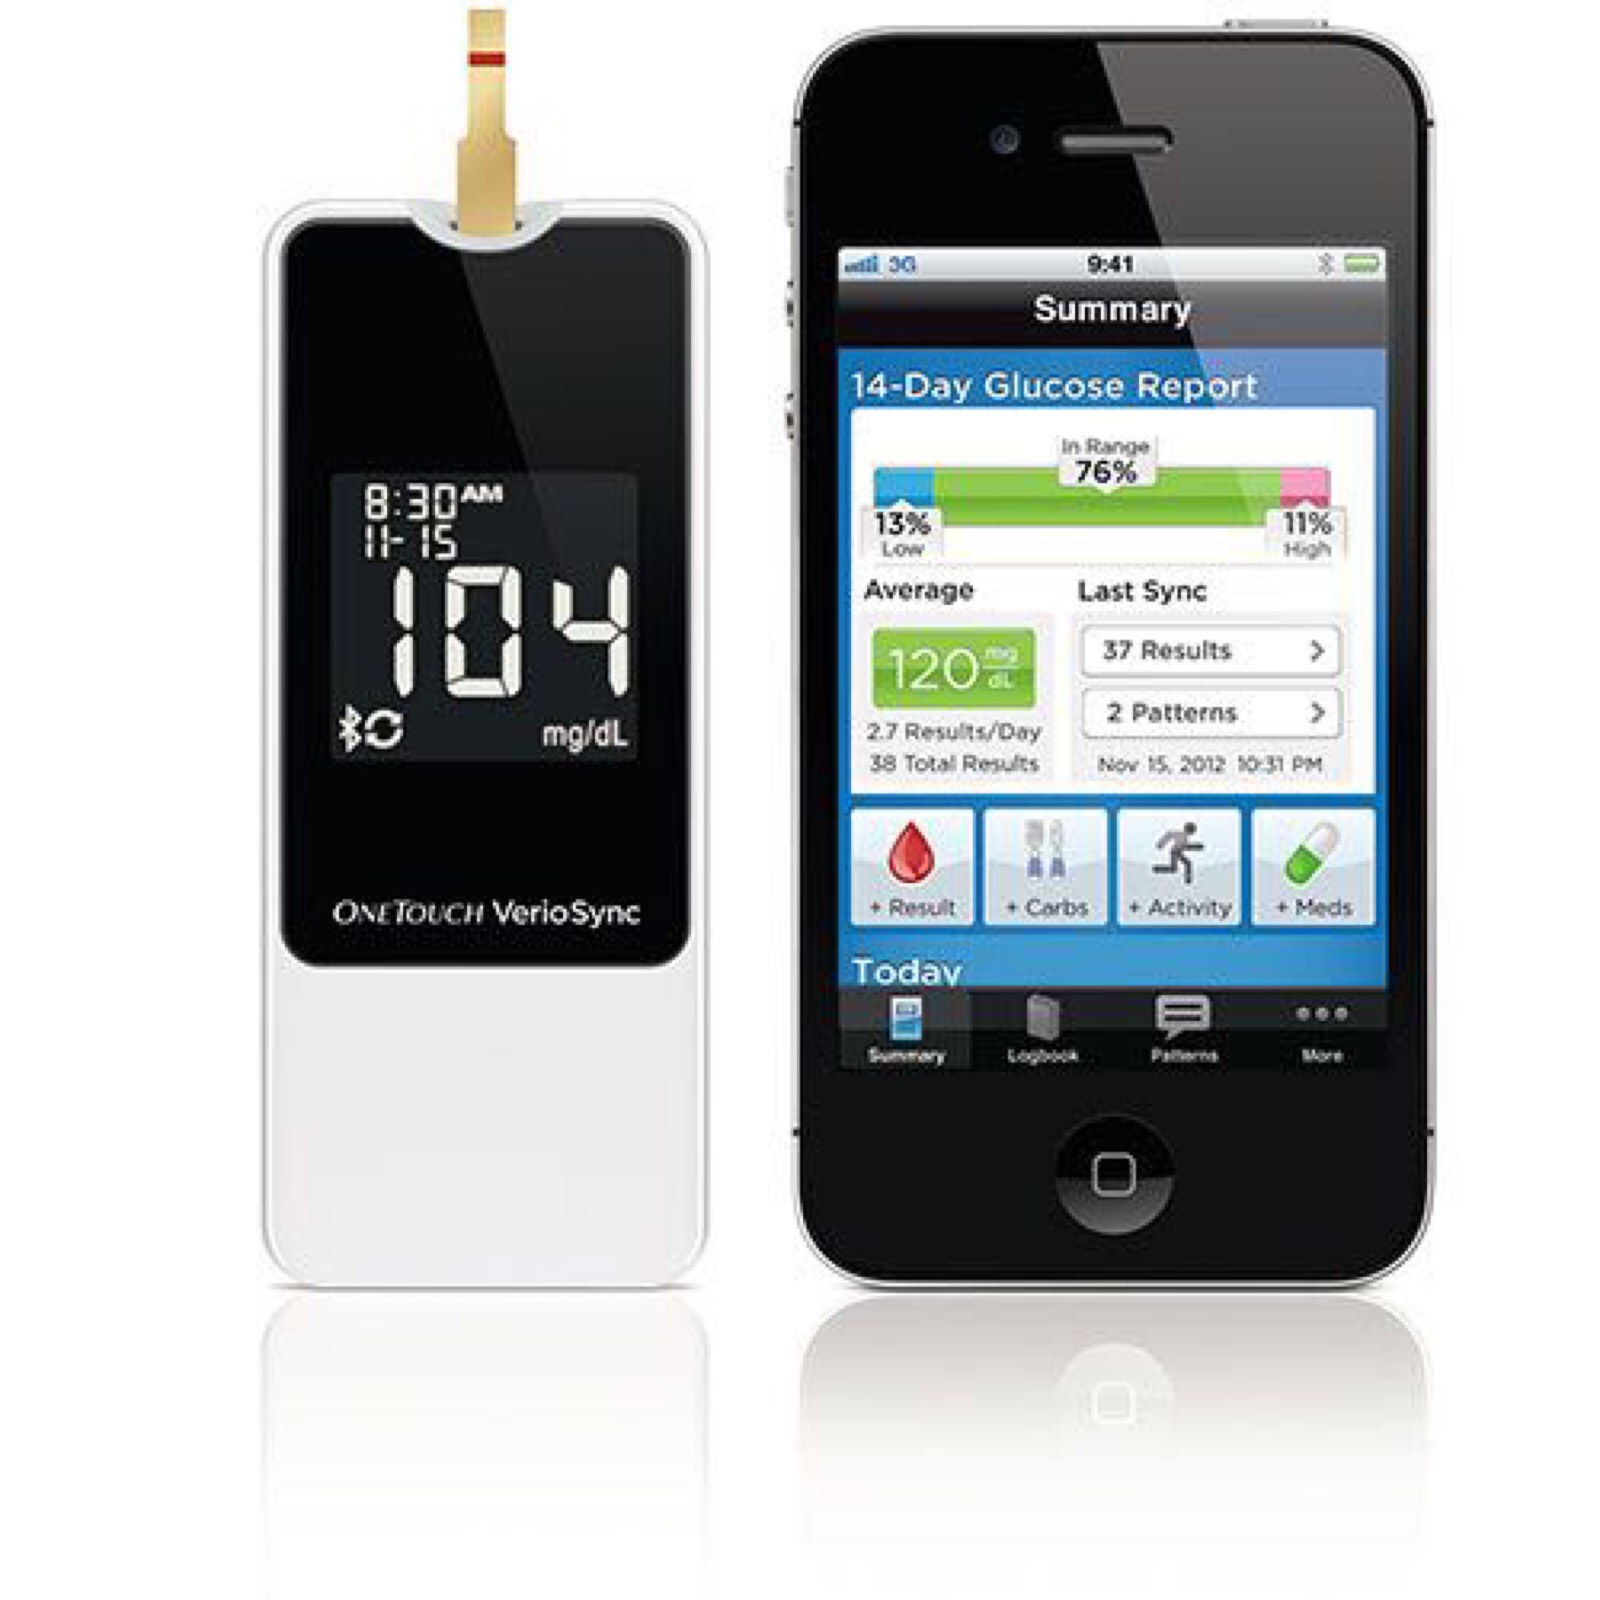 Concept image of Apple glucose monitor.